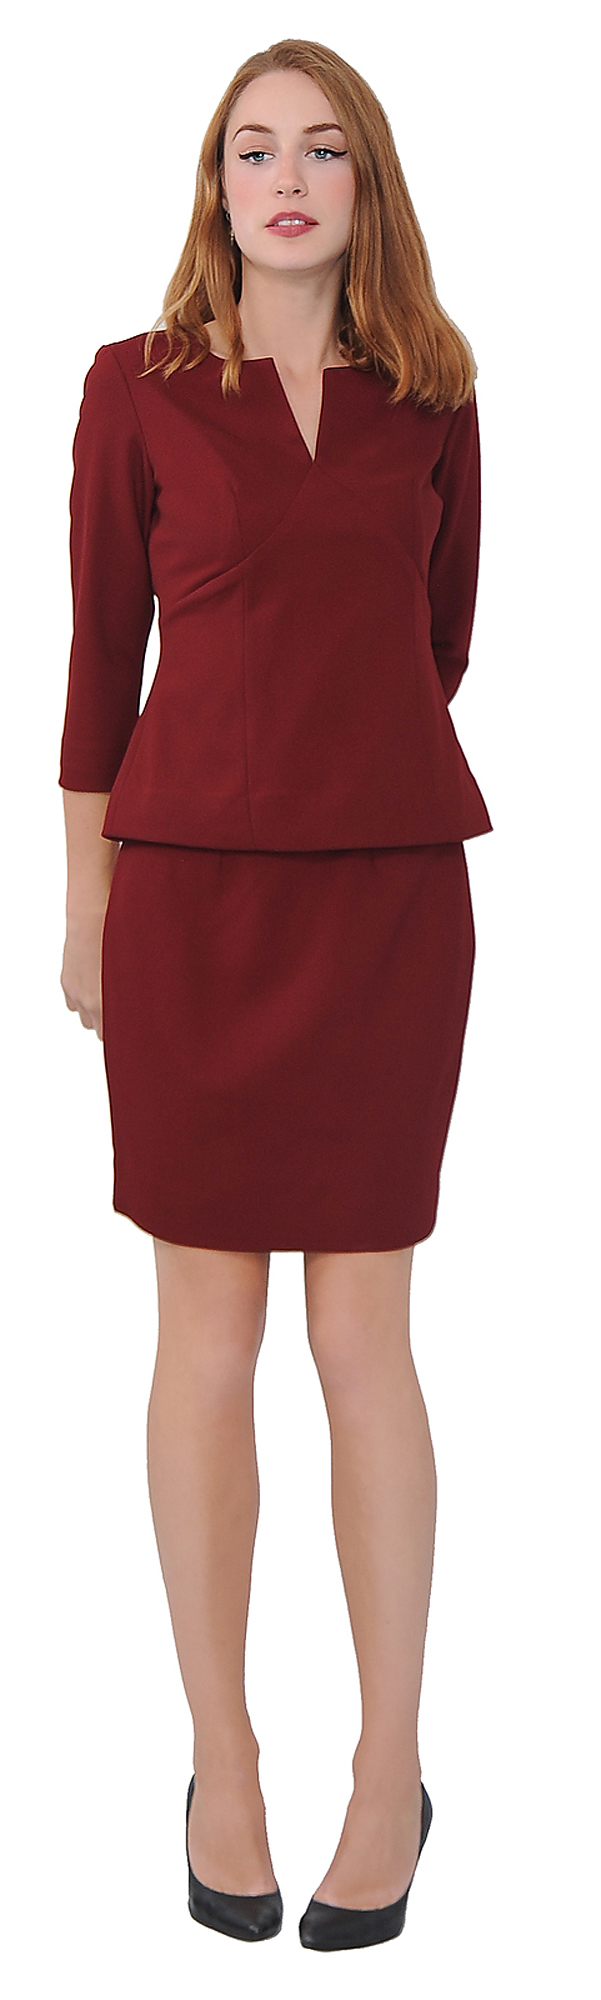 MARYCRAFTS WOMEN'S ELEGANT SKIRT SUIT SET WORK OFFICE BUSINESS ...